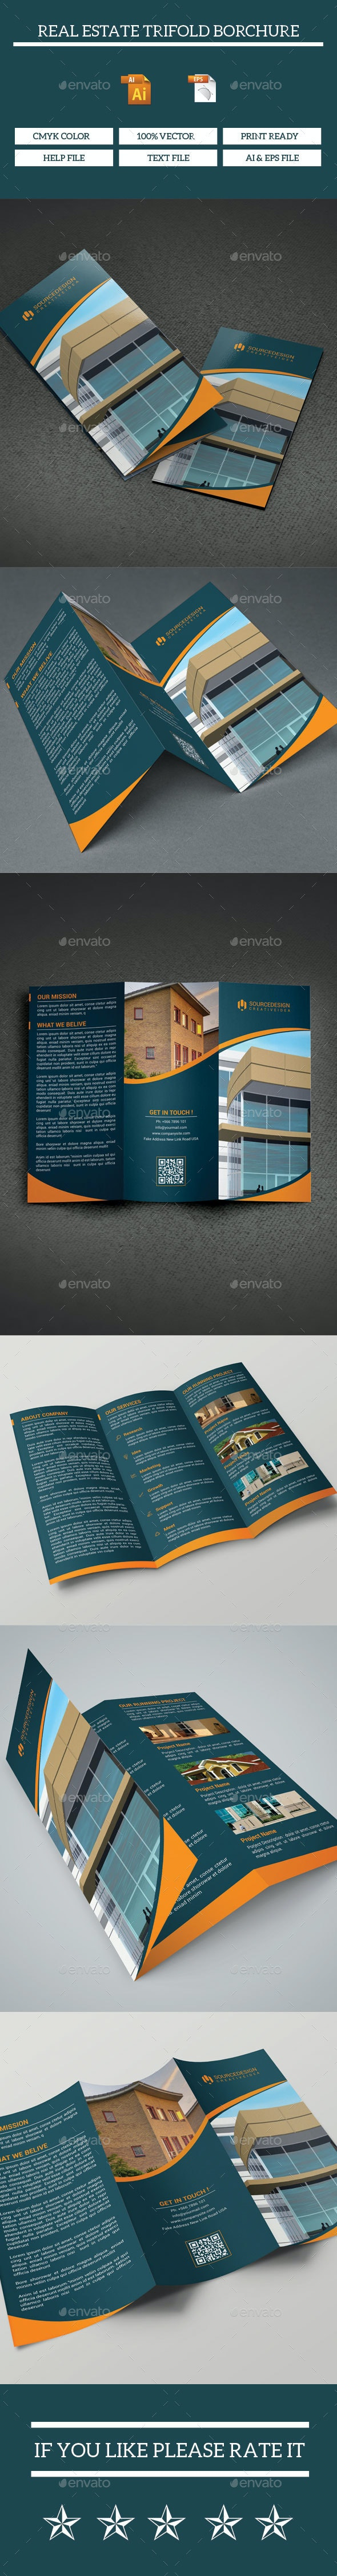 New Start Real Estate Company Trifold Brochure - Brochures Print Templates